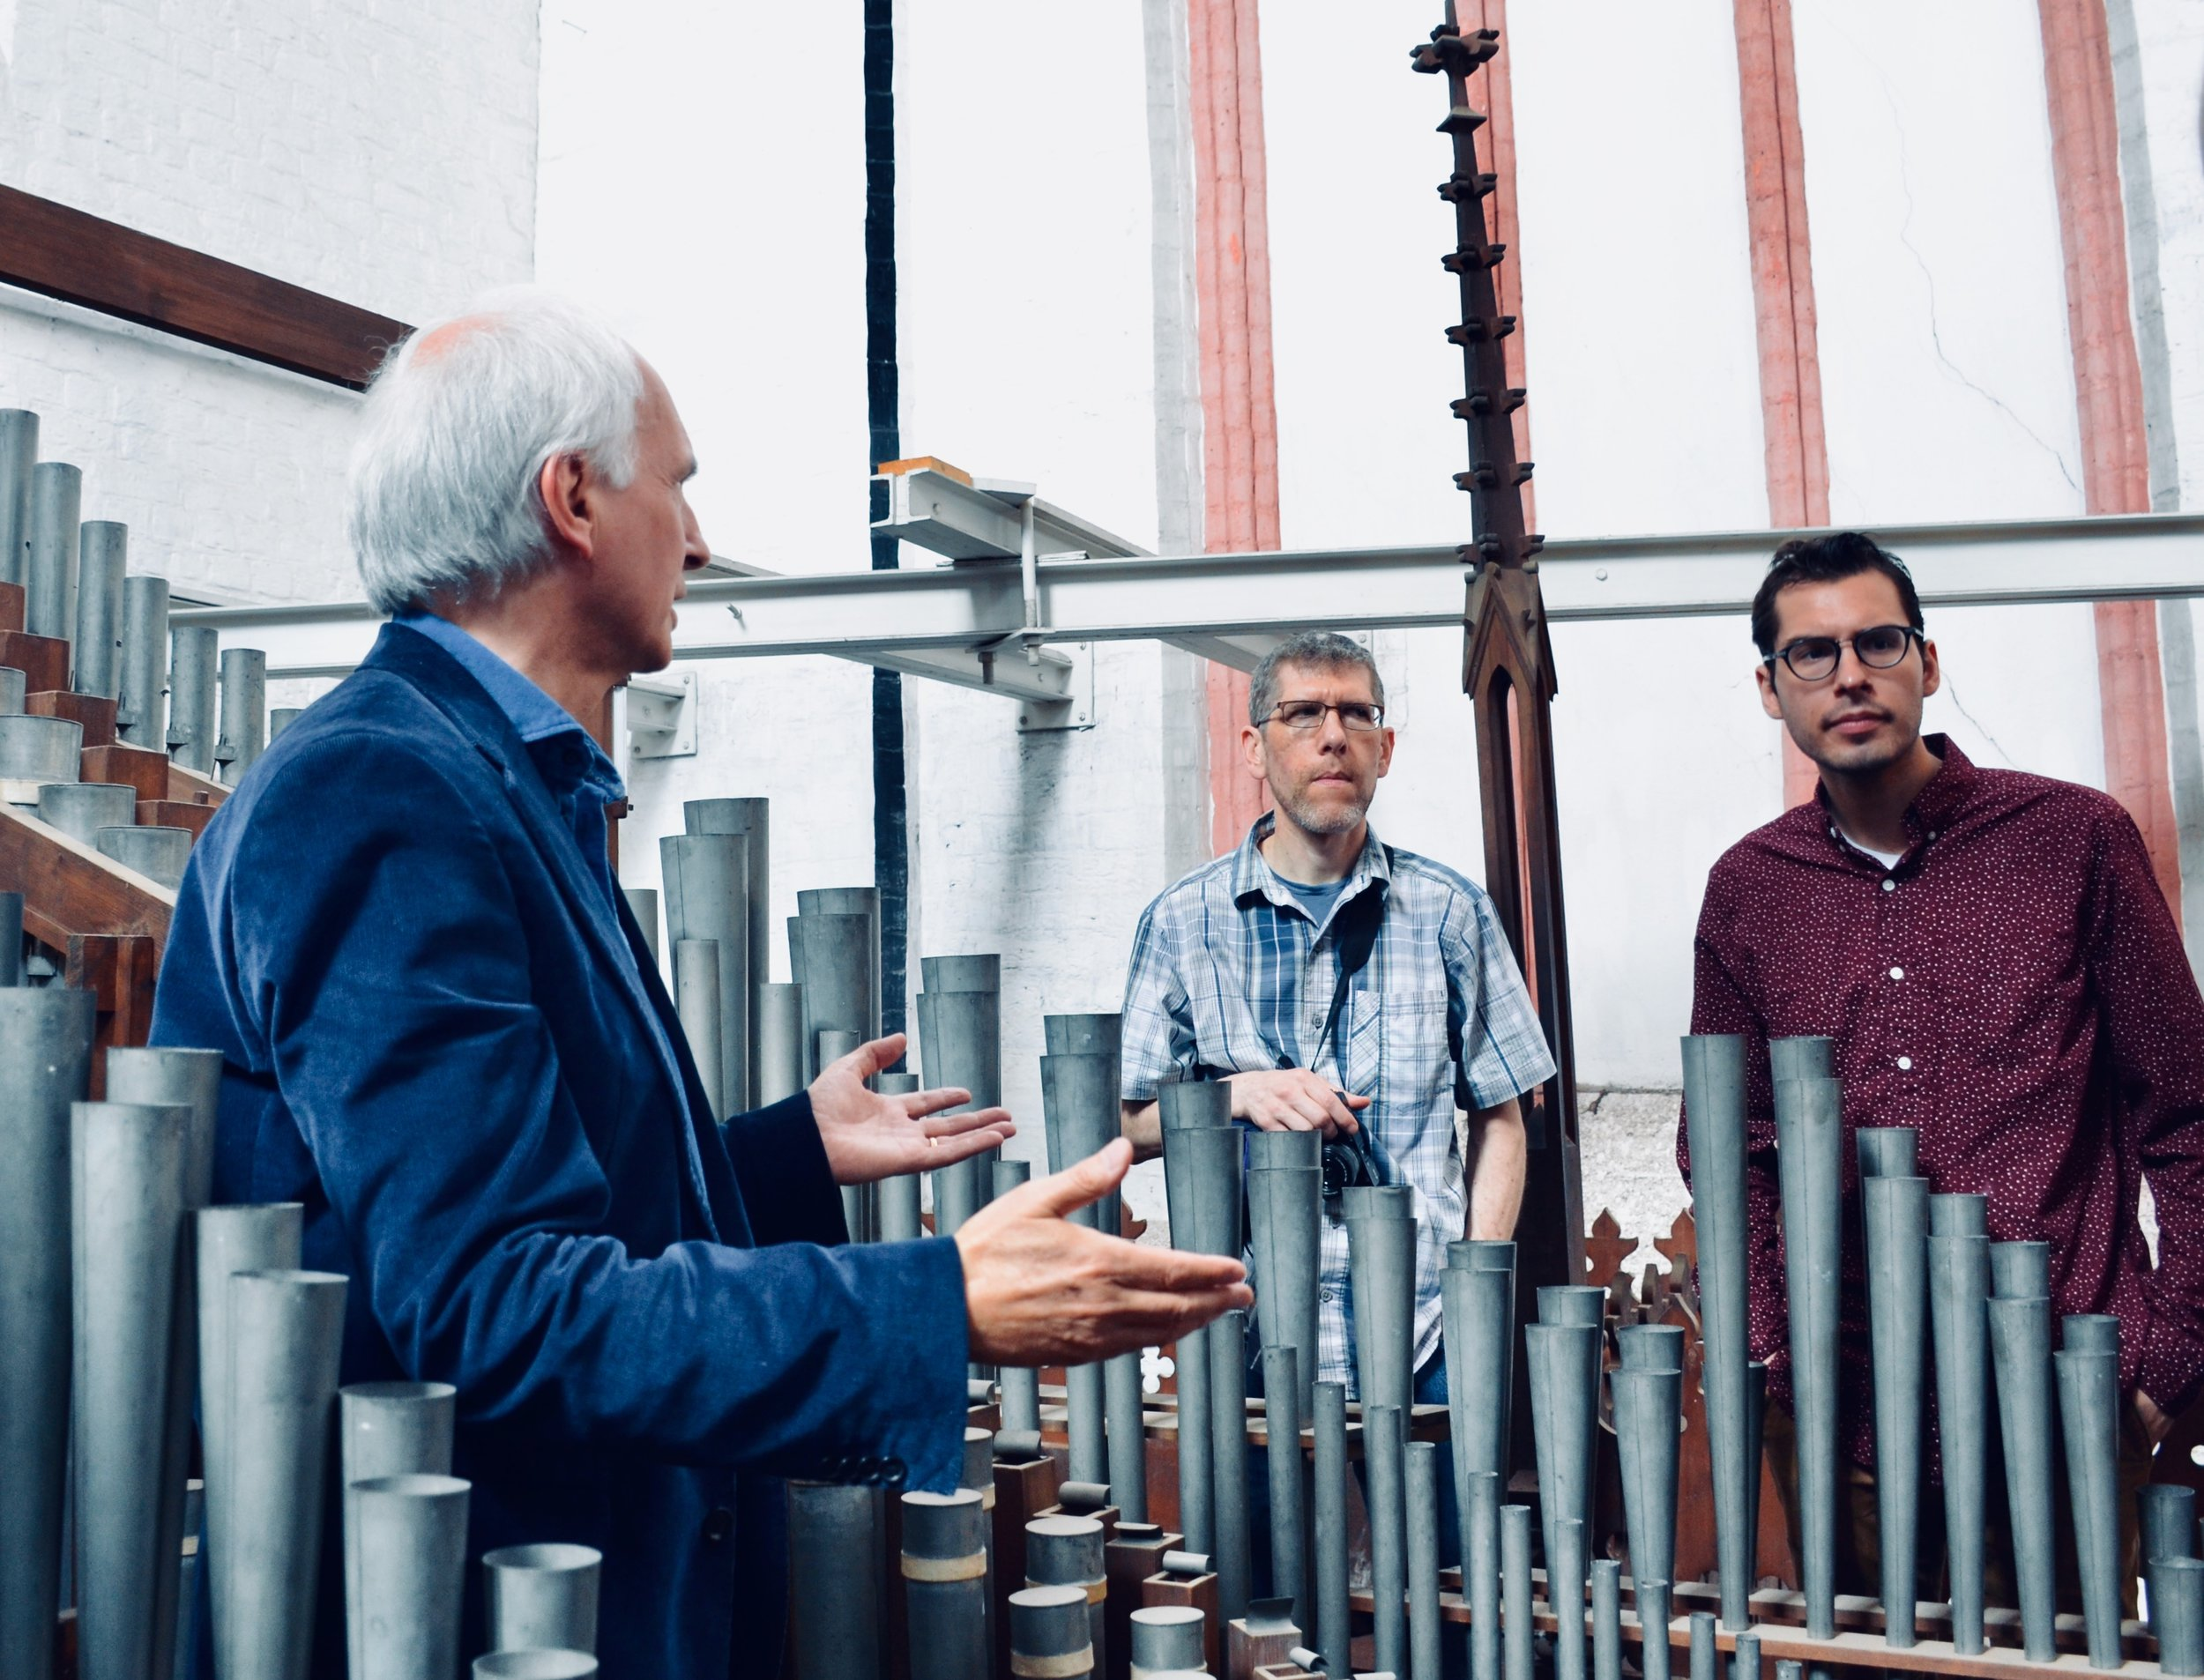 Prof Jan Ernst points out features of the pipework. 1871 Ladegast Organ, Schwerin Dom. Boston Organ Studio.